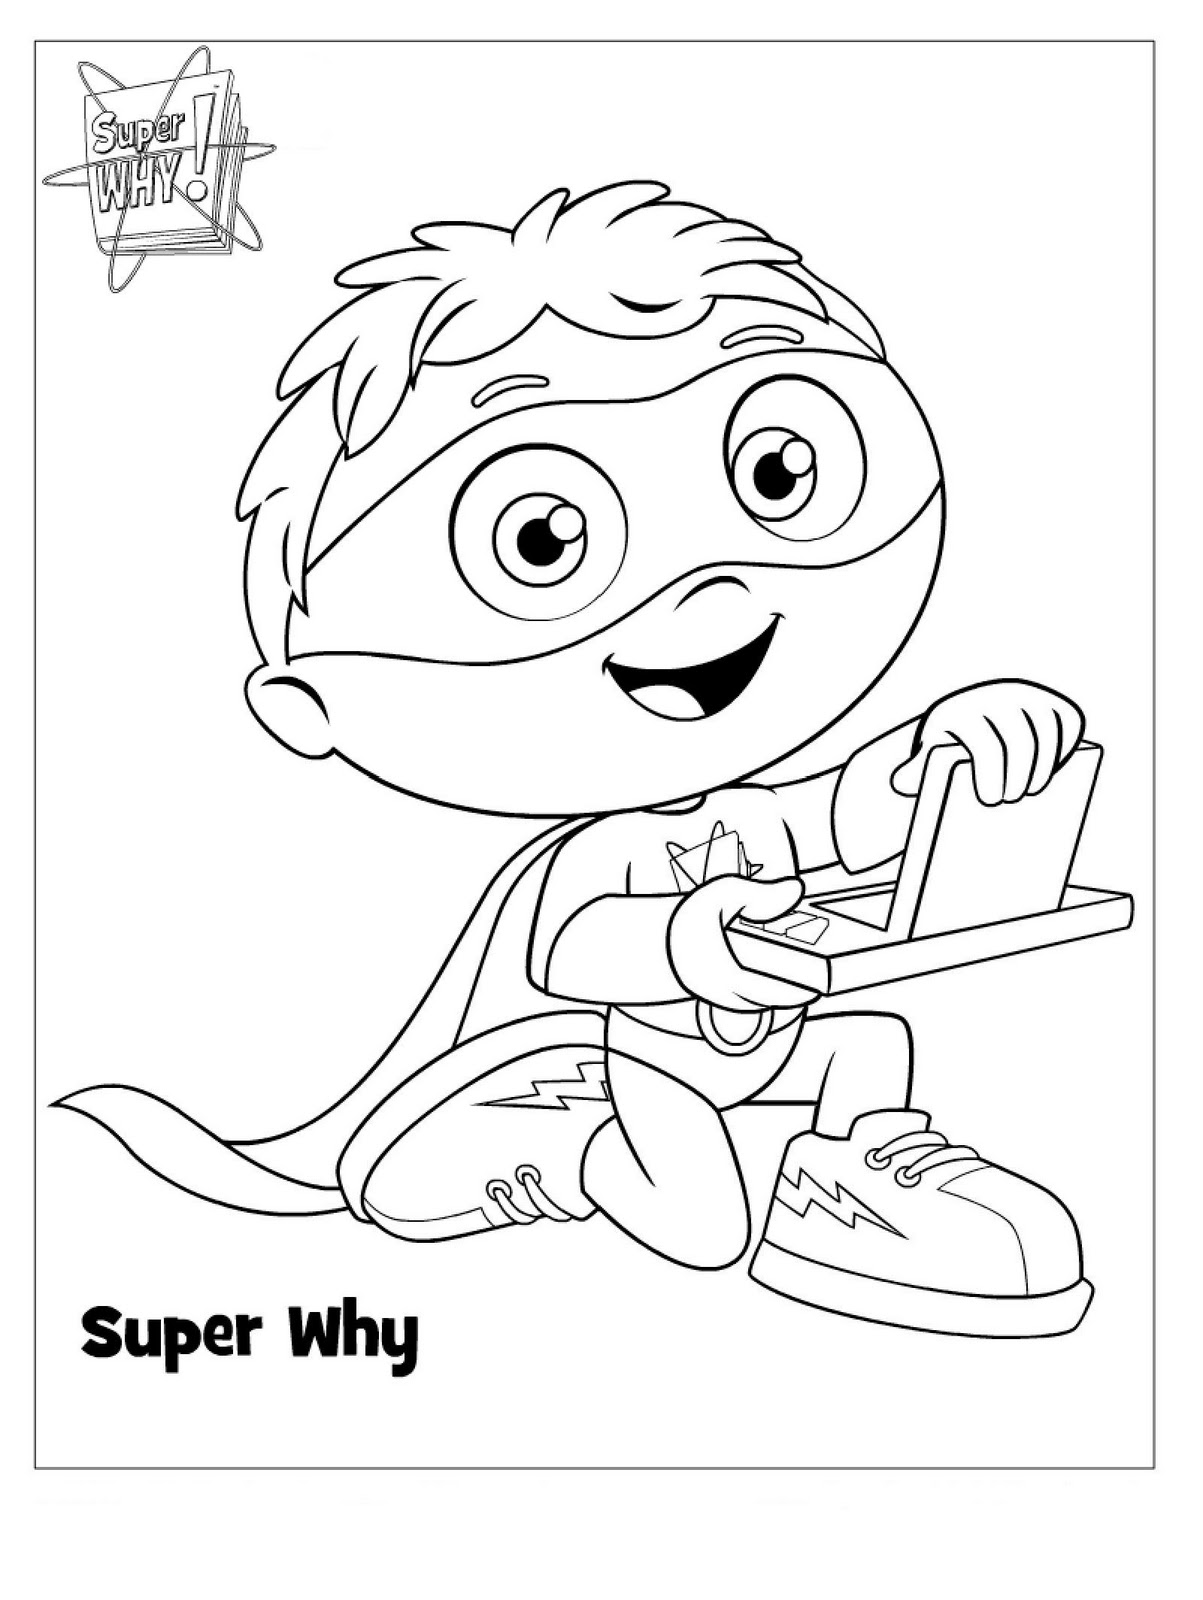 photograph relating to Super Why Printable identified as Tremendous Why Coloring Webpages - Perfect Coloring Webpages For Little ones